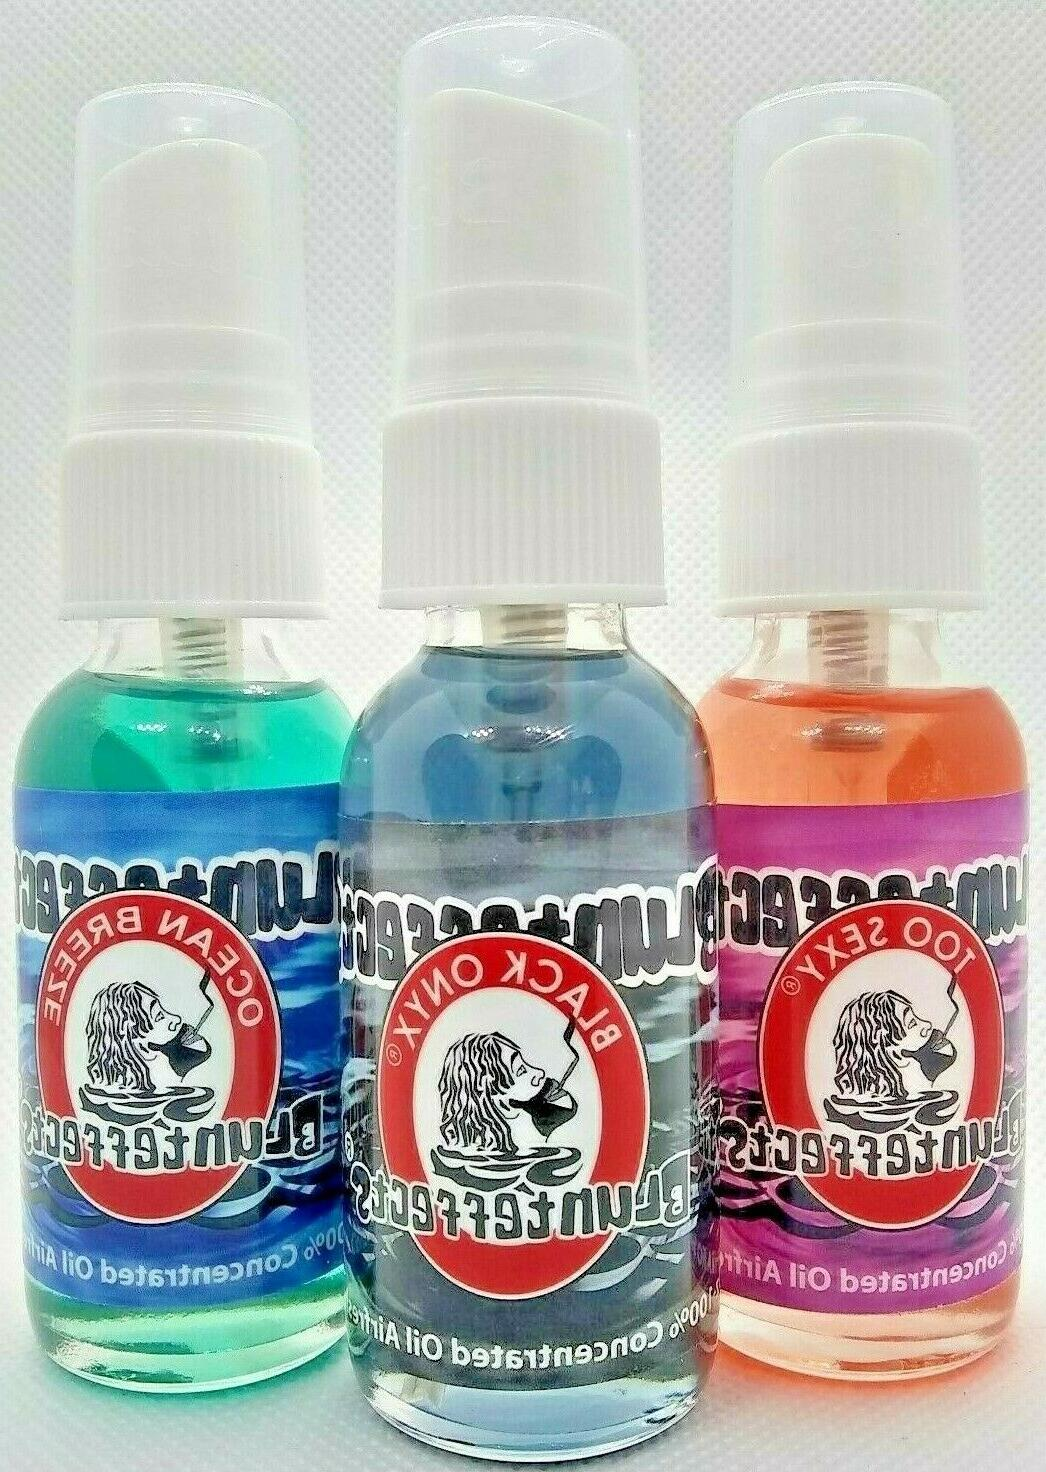 Blunteffects / Effects 100% Fresheners Scents.